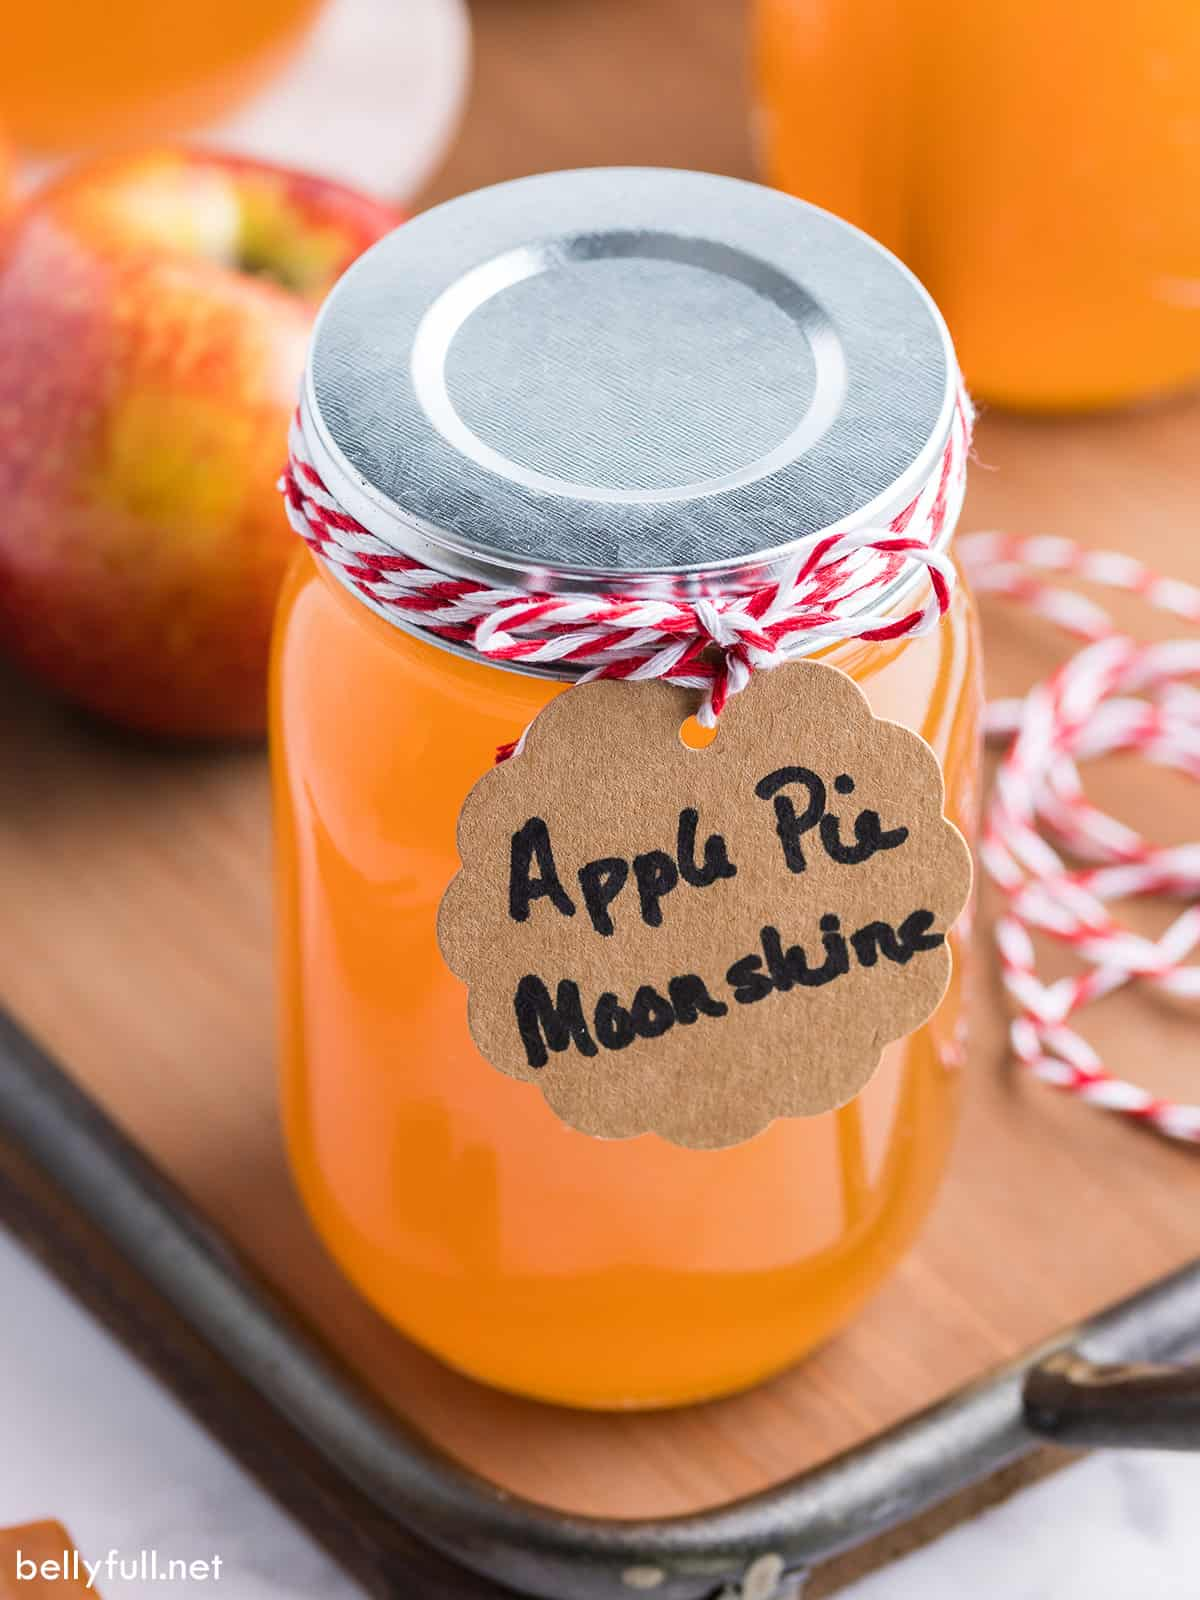 A mason jar of apple pie moonshine with a ribbon for gift-giving